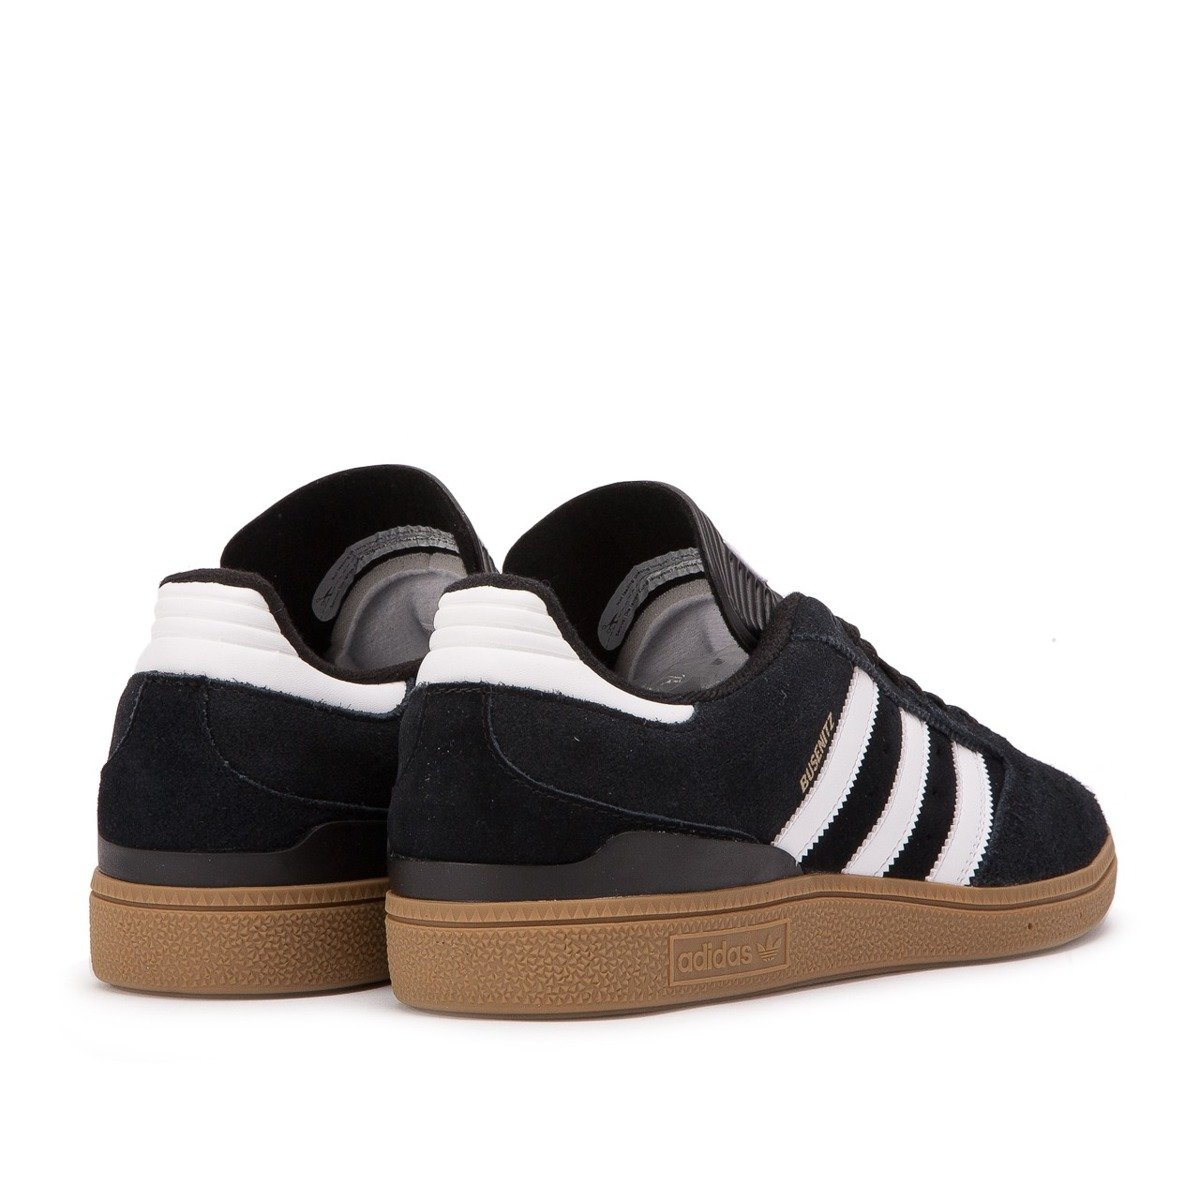 new style d488d 5bd5f ... shoes adidas busenitz pro black Click to zoom ...